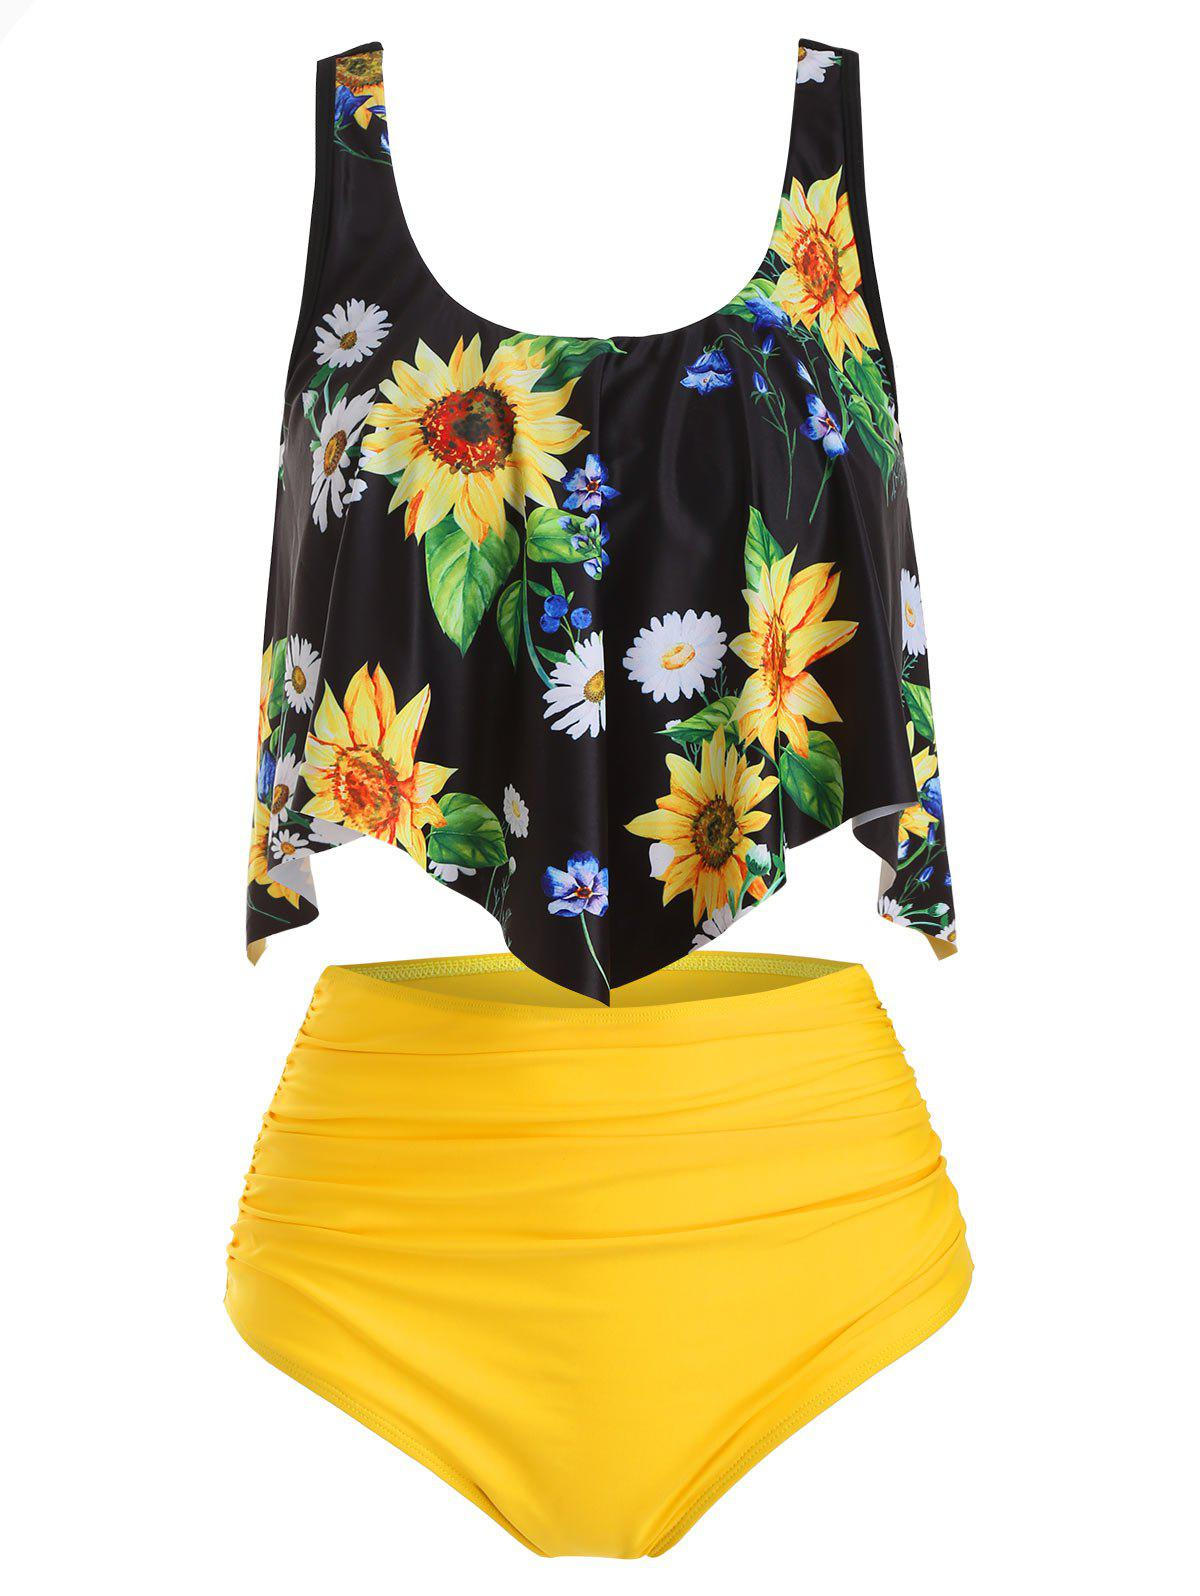 Maillot de Bain Tankini Tournesol Superposé à Volants - multicolor 2XL